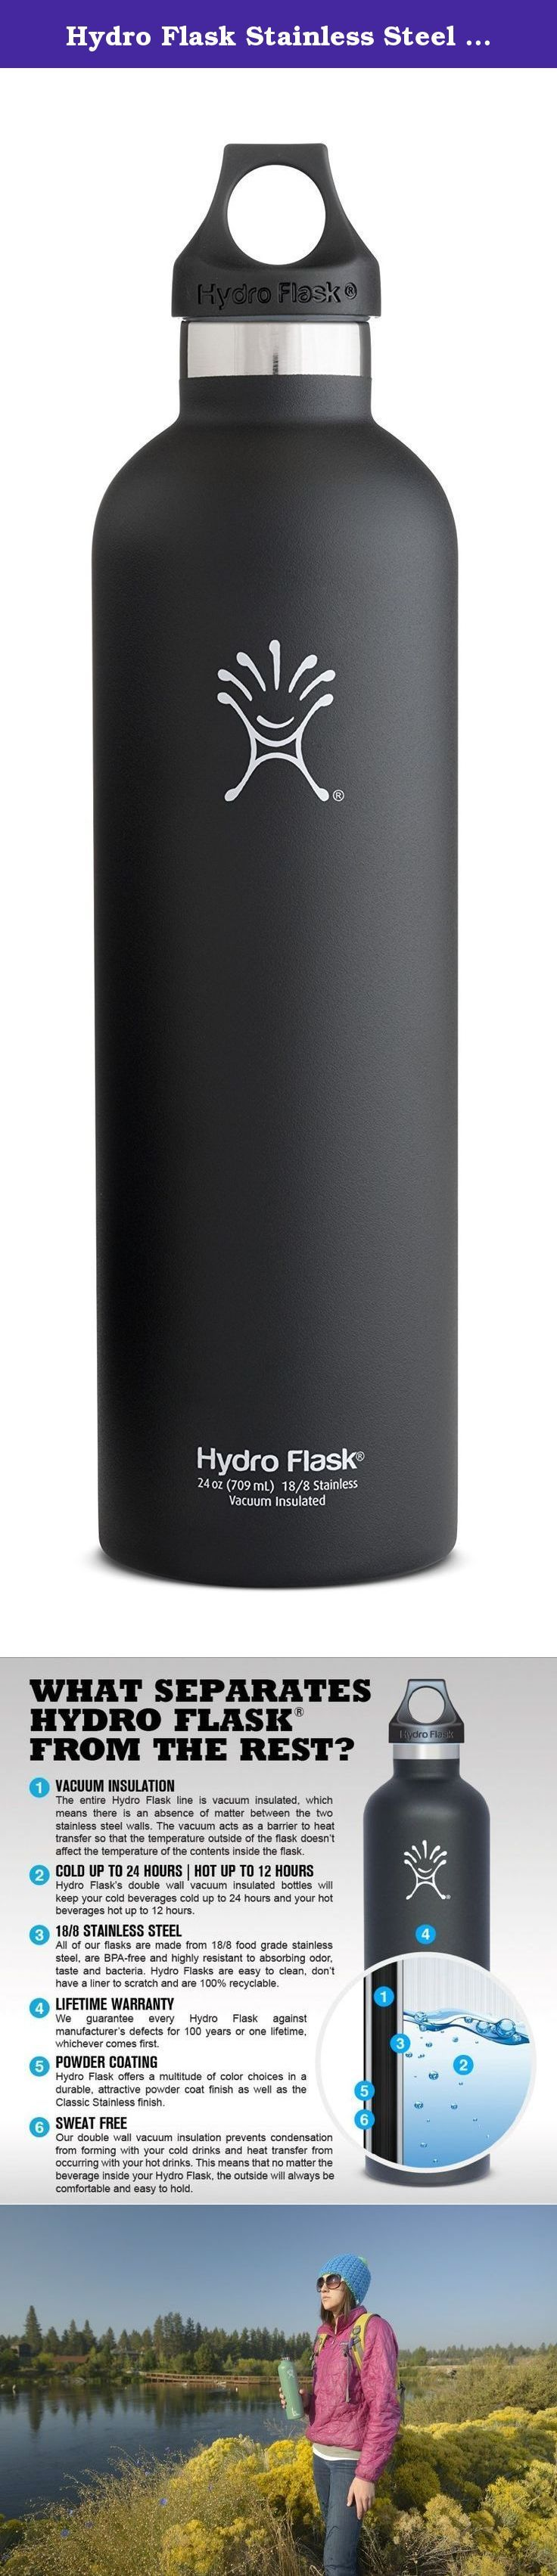 Hydro Flask Stainless Steel Drinking Bottle, Black Butte, 18-Ounce. Hydro Flask's insulated water bottles are made of high quality food grade 18/8 stainless steel. The bottles have no liner (like most aluminum bottles) and are BPA free. Unlike plastic water bottles or single wall stainless bottles, Hydro Flask will keep your beverage of choice at your preferred temperature for hours, whether you choose hot, cold or room temperature liquids. All Hydro Flask products feature a lifetime...